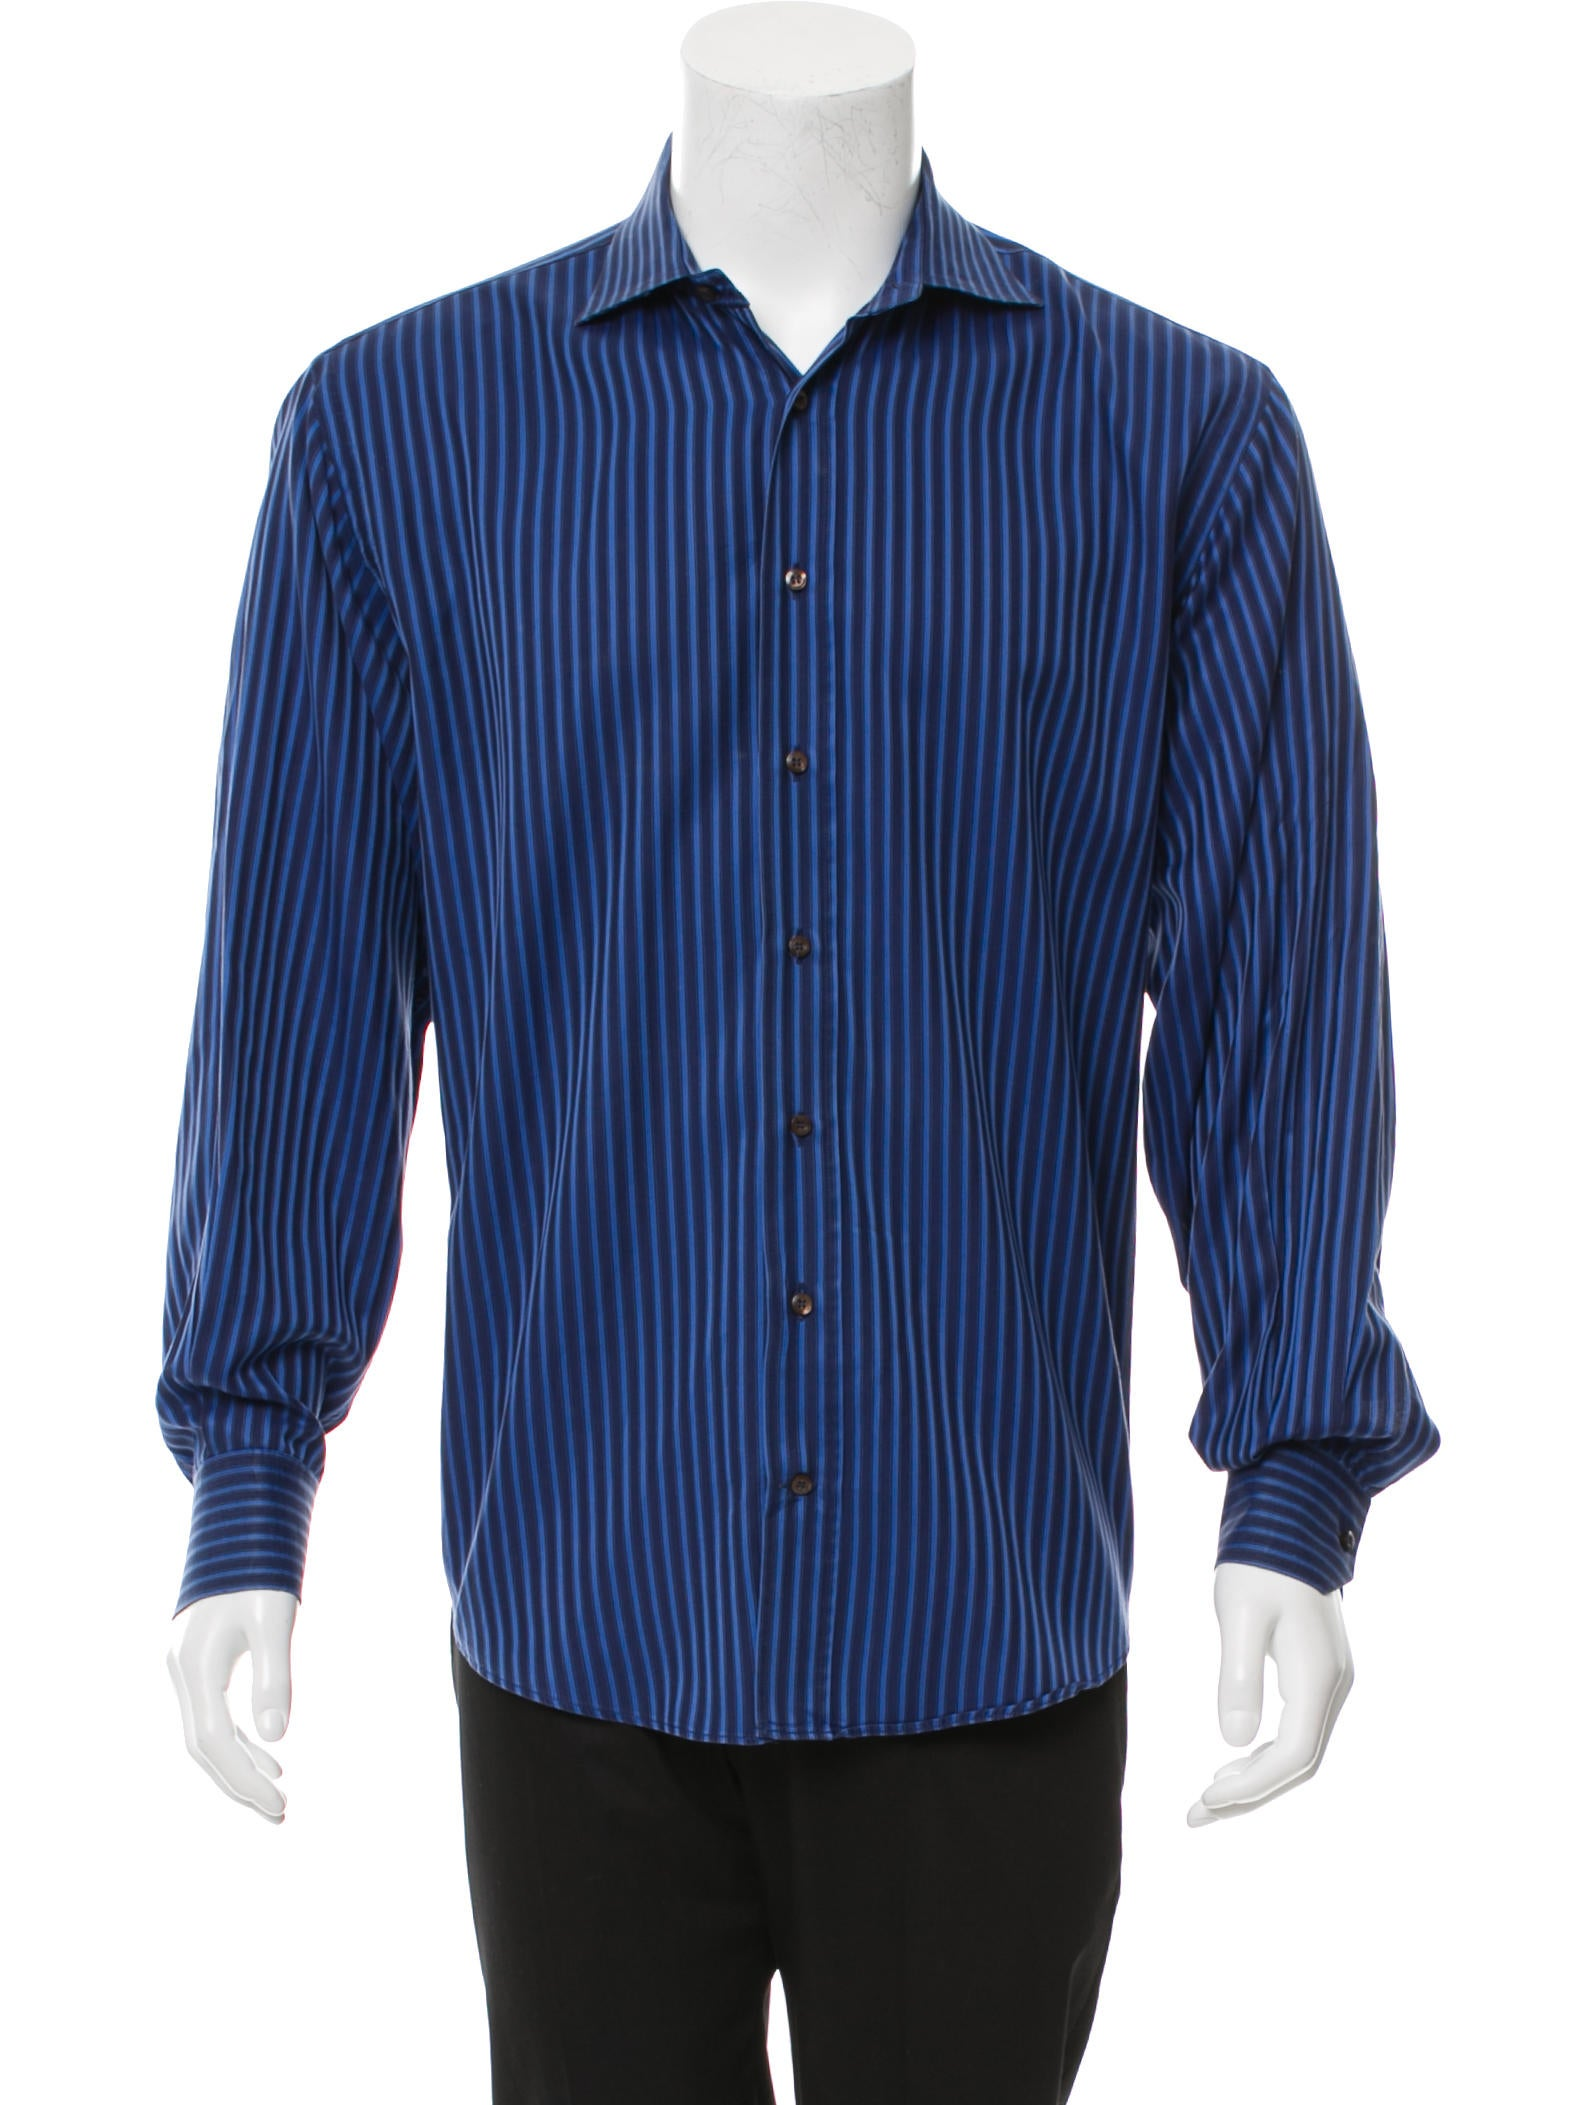 Etro striped button up shirt clothing etr47798 the for Striped button up shirt mens